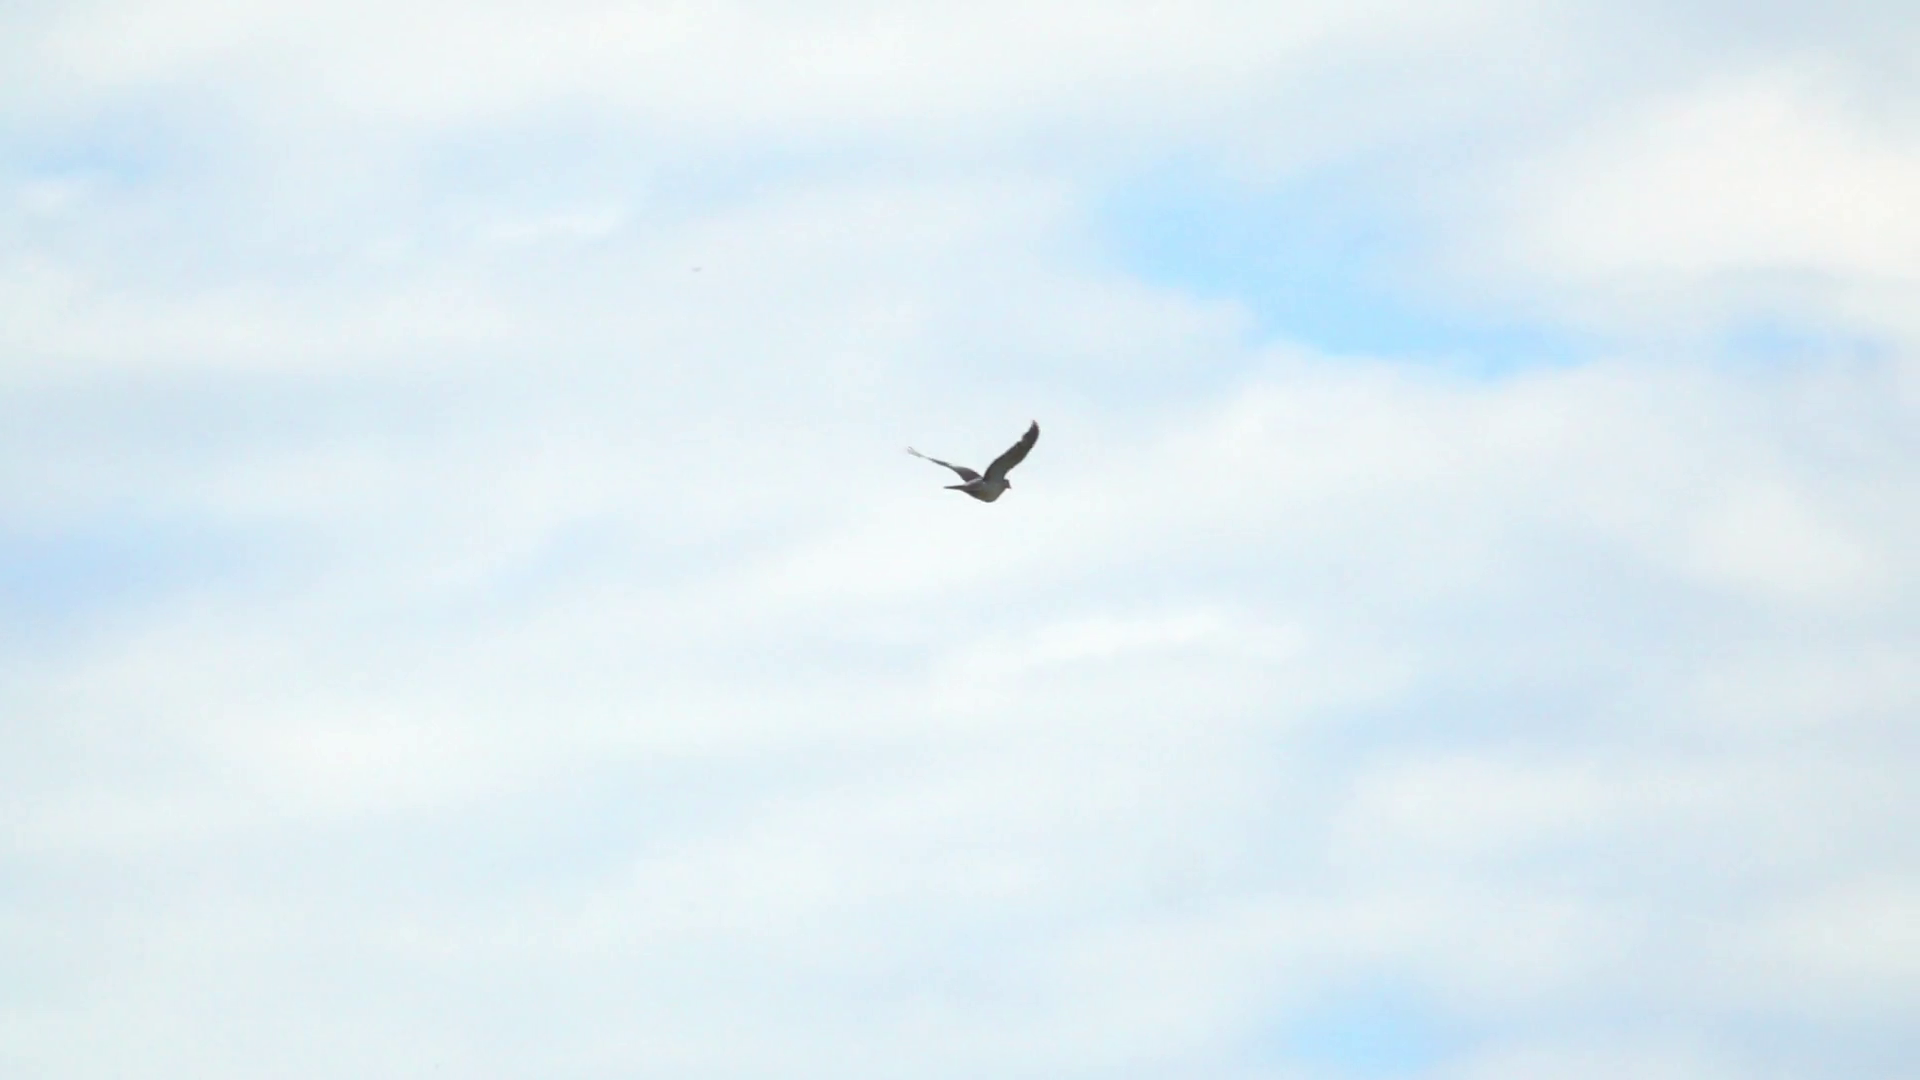 one-bird-flying-in-empty-sky-nature-background-with-wildlife_r09fknvge_thumbnail-full01